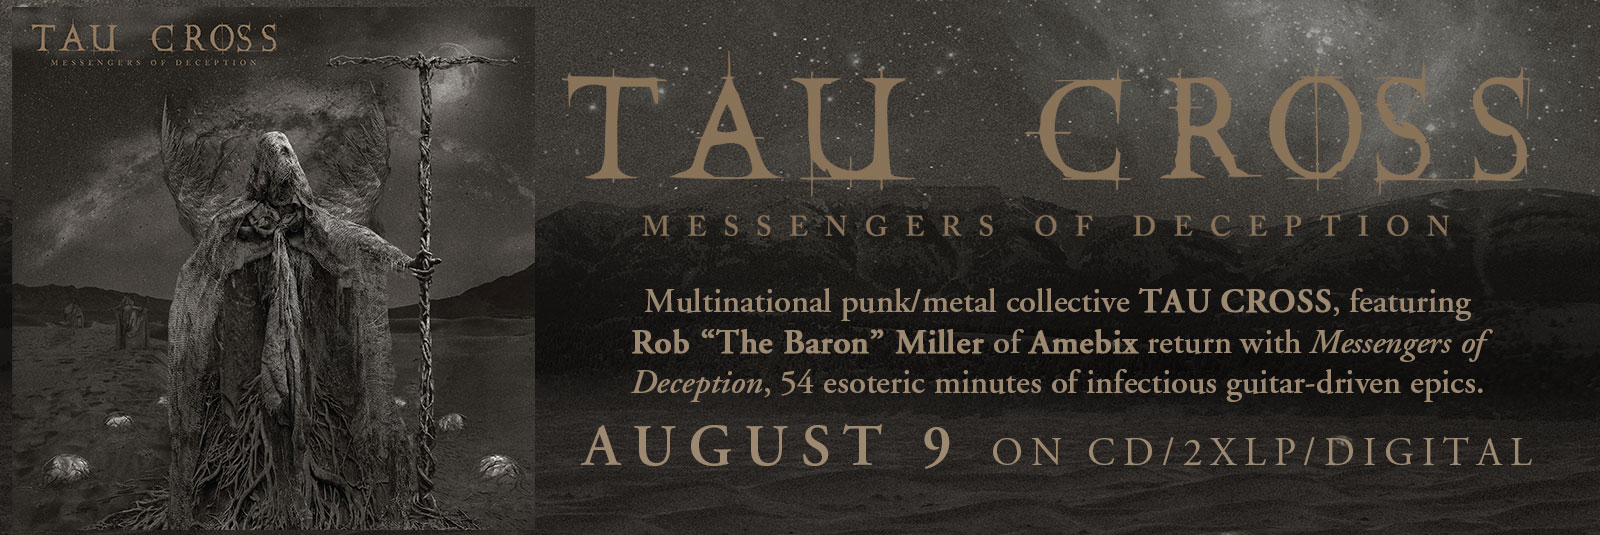 tau-cross-messengers-of-deception-heavy-metal-crust-punk-august-9